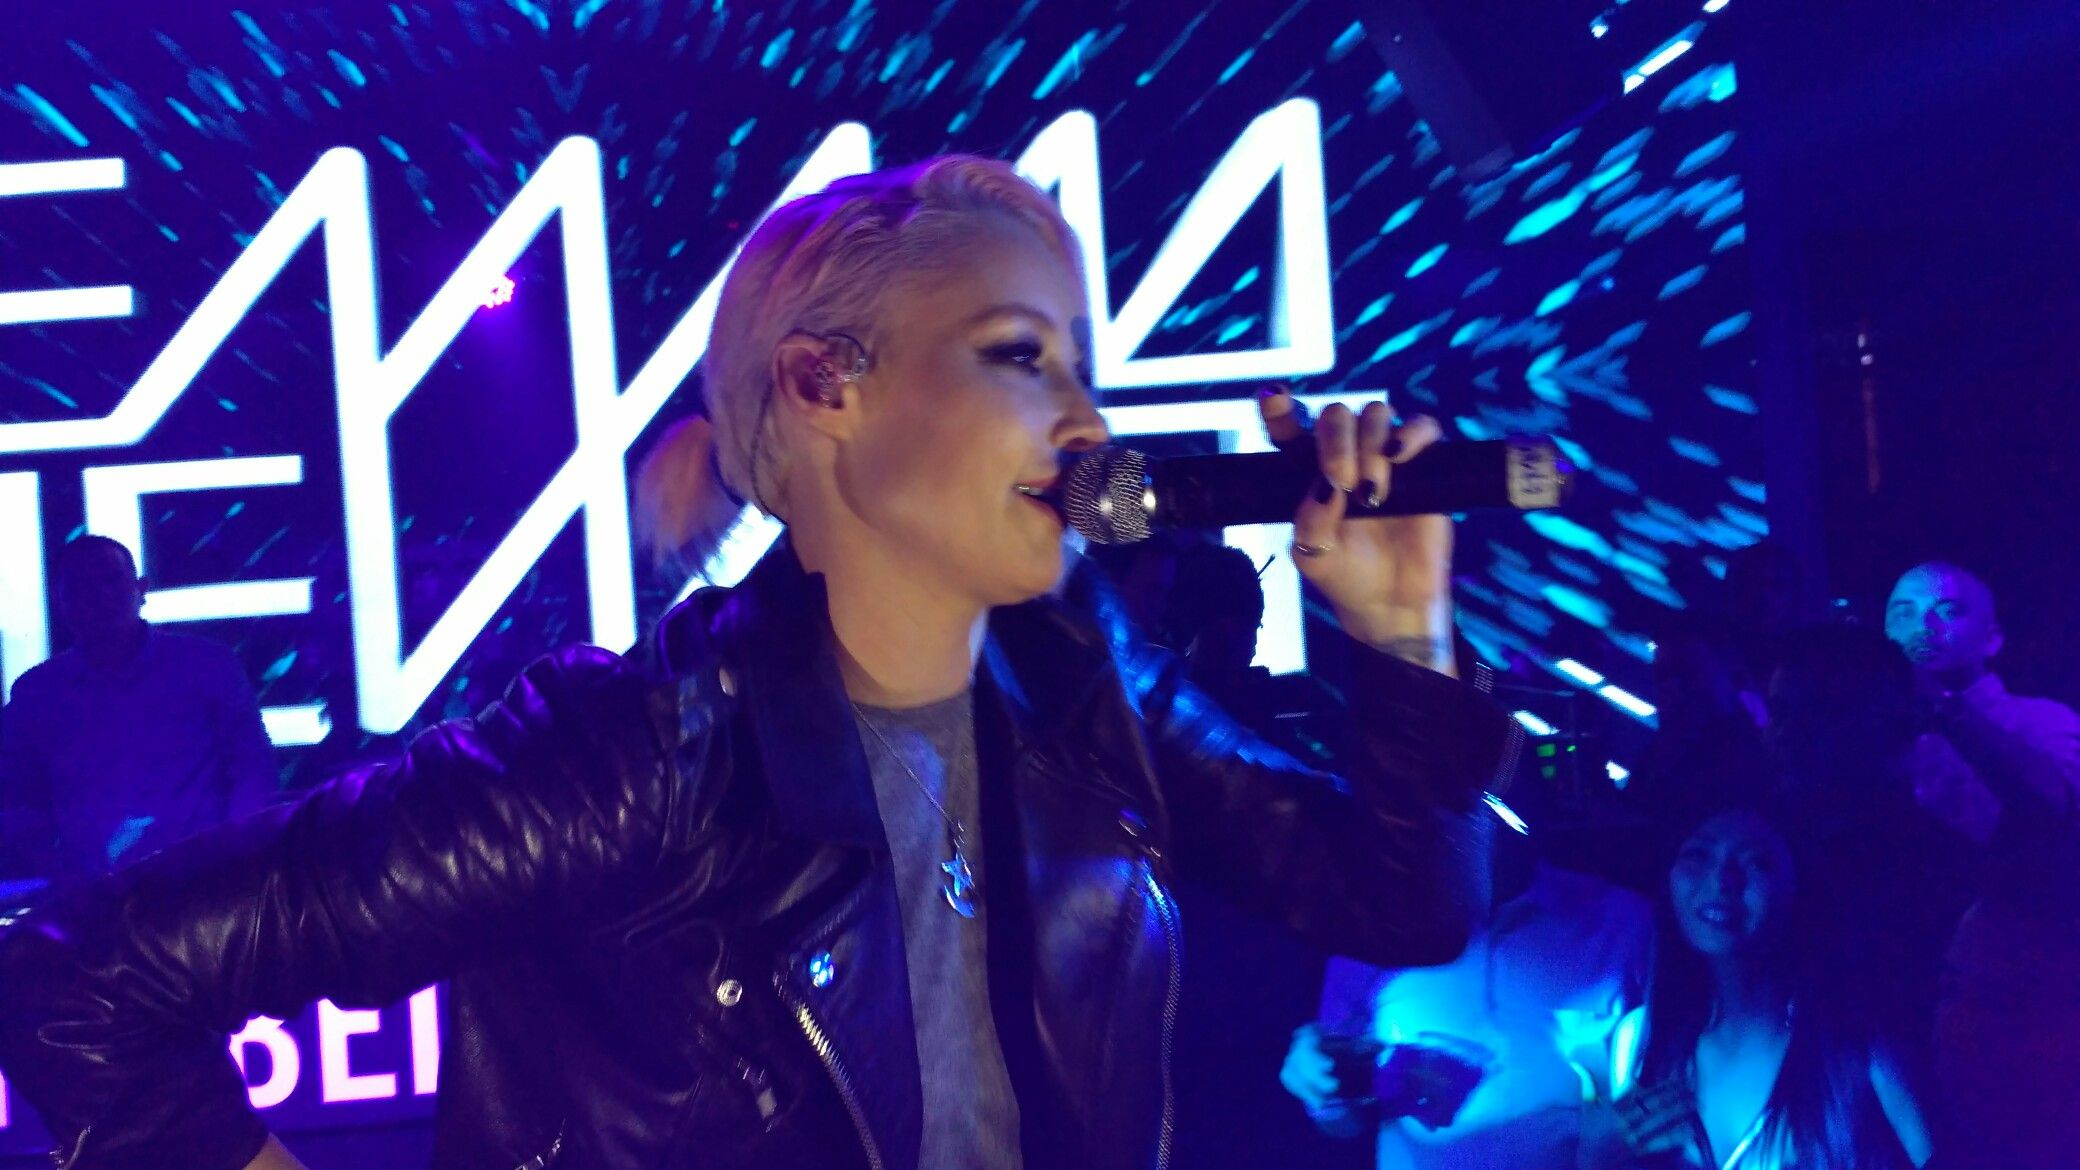 Emma Hewitt on Immigrant Jakarta, sound raiders powered by @INFINITE live (Lighting, Integrated Visual-audio Equipment) www.ngi-infinite.com #RentalSoundLightMultimedia #RentalSound #SoundSystem #Multimedia #Lighting #RentalSoundLights #RentalMultimedia #RentalLighting #Rental #Sound #visual #SewaOnline #RentalOnline #SewaSoundOnline #PortalRentalOnline